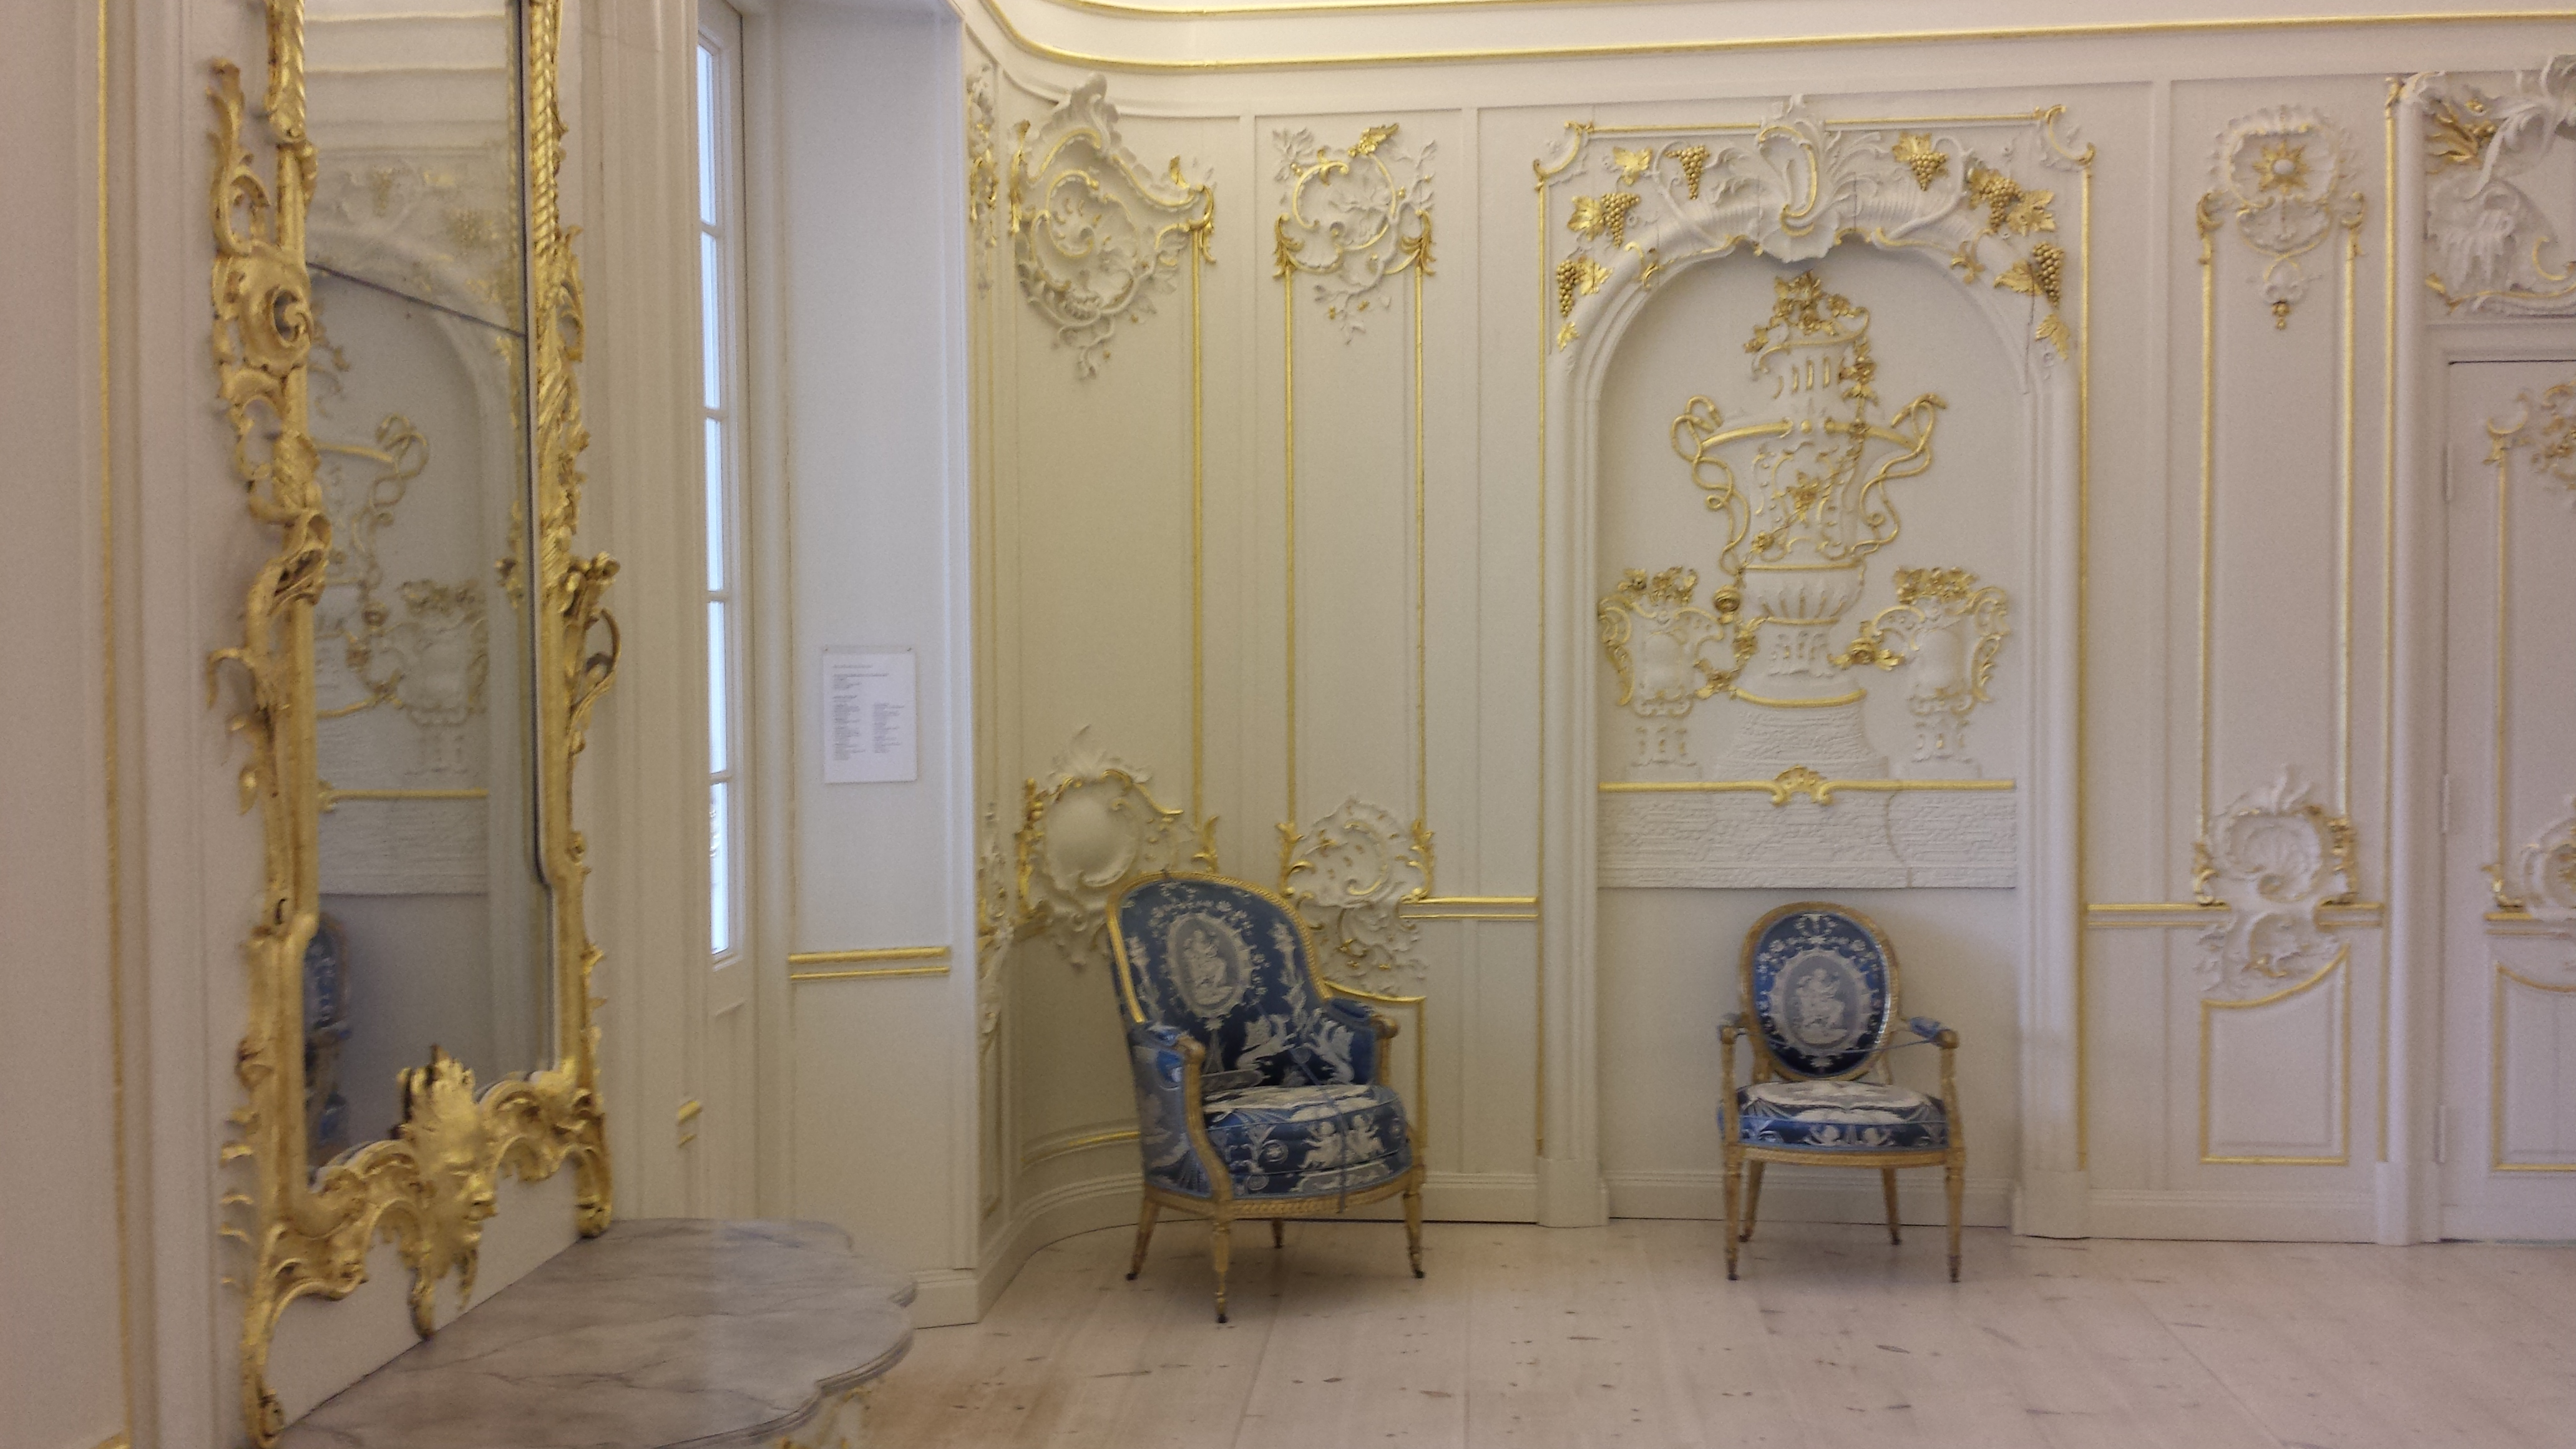 Baroque room by Arminius1871 on DeviantArt